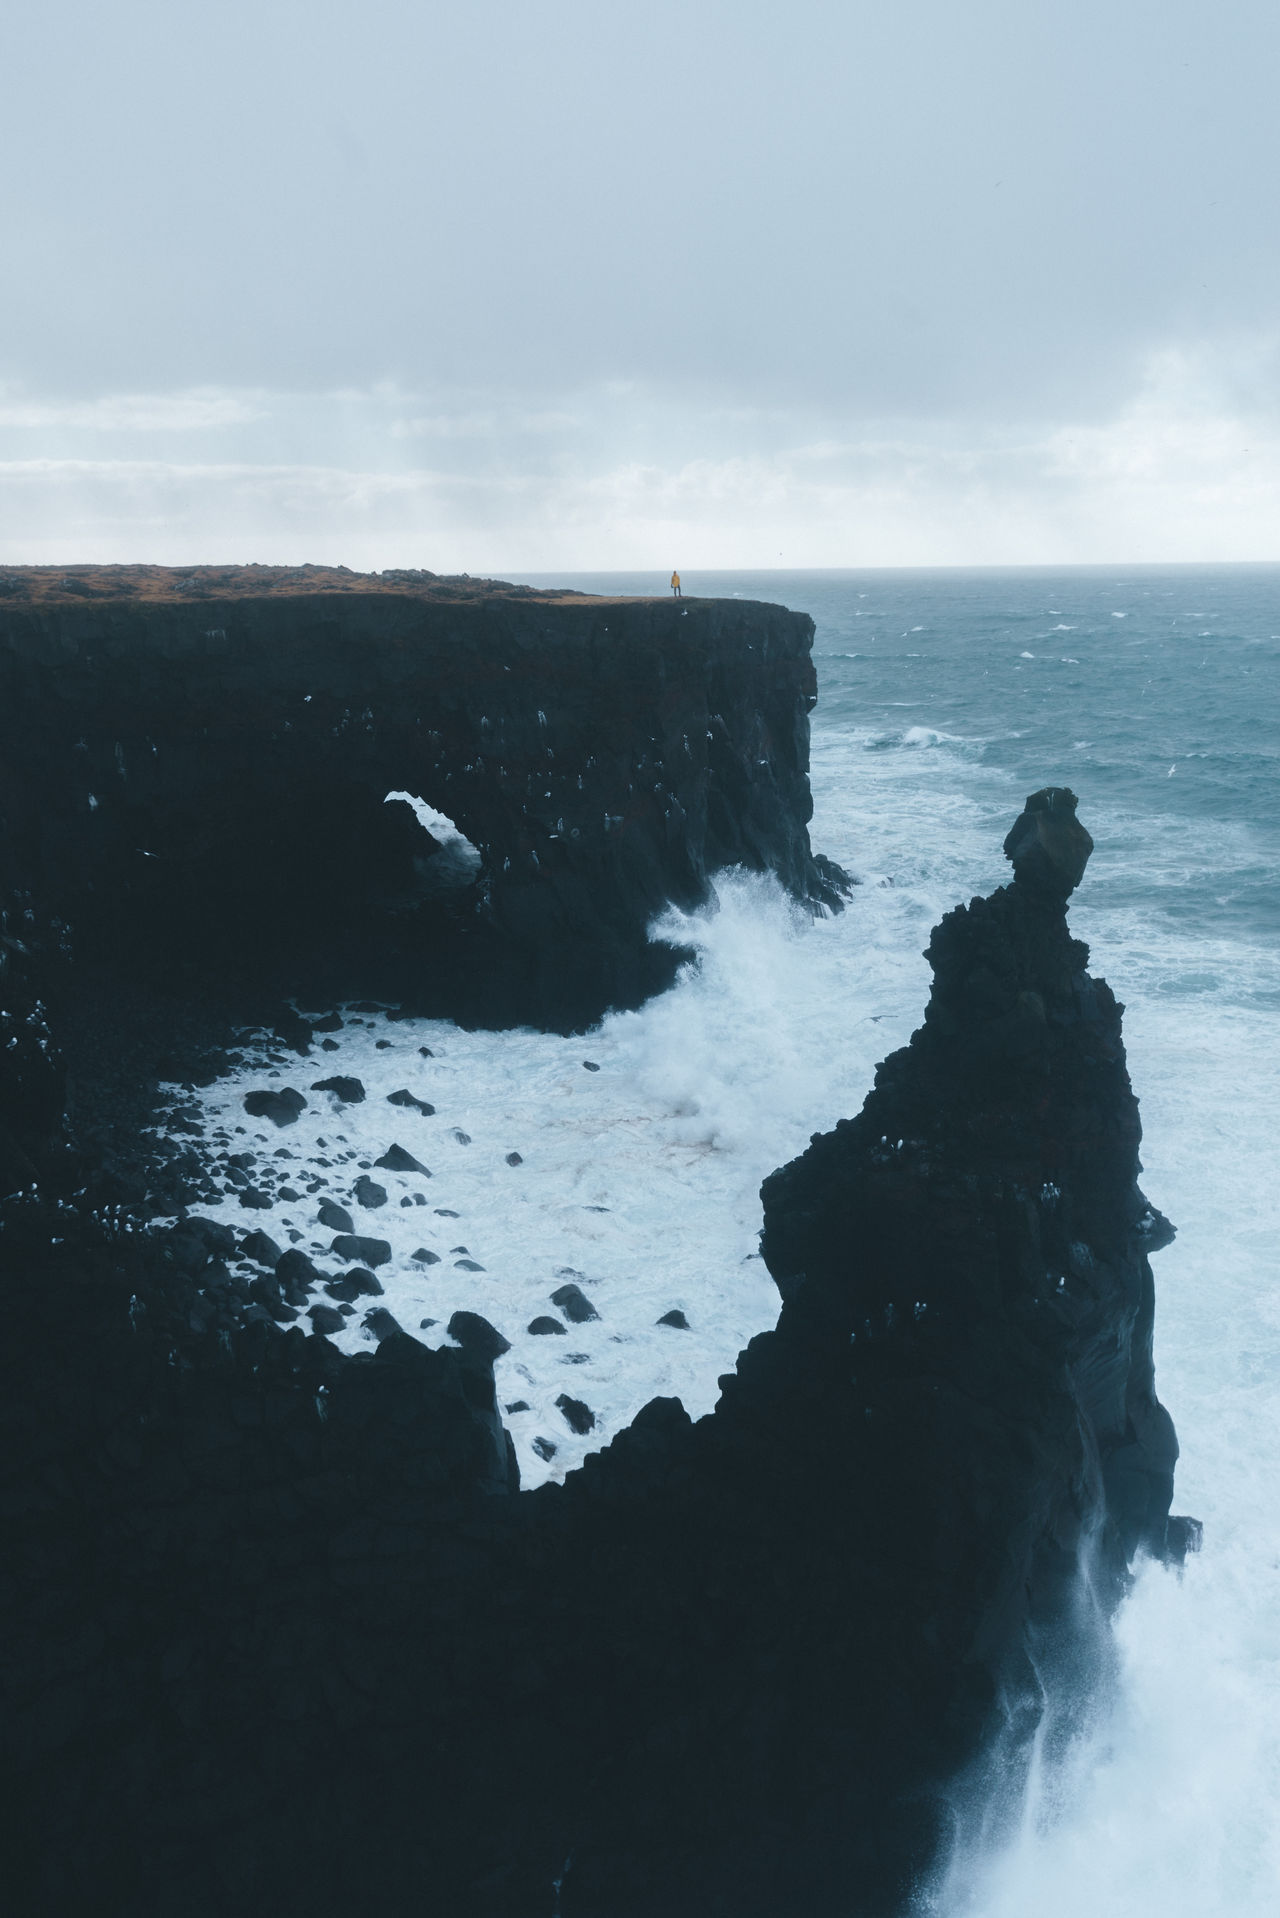 Iceland coast landscape with rough sea Beauty In Nature Day Horizon Over Water Nature No People Outdoors Rock - Object Rock Formation Scenics Sea Sky Tranquility Water Wave